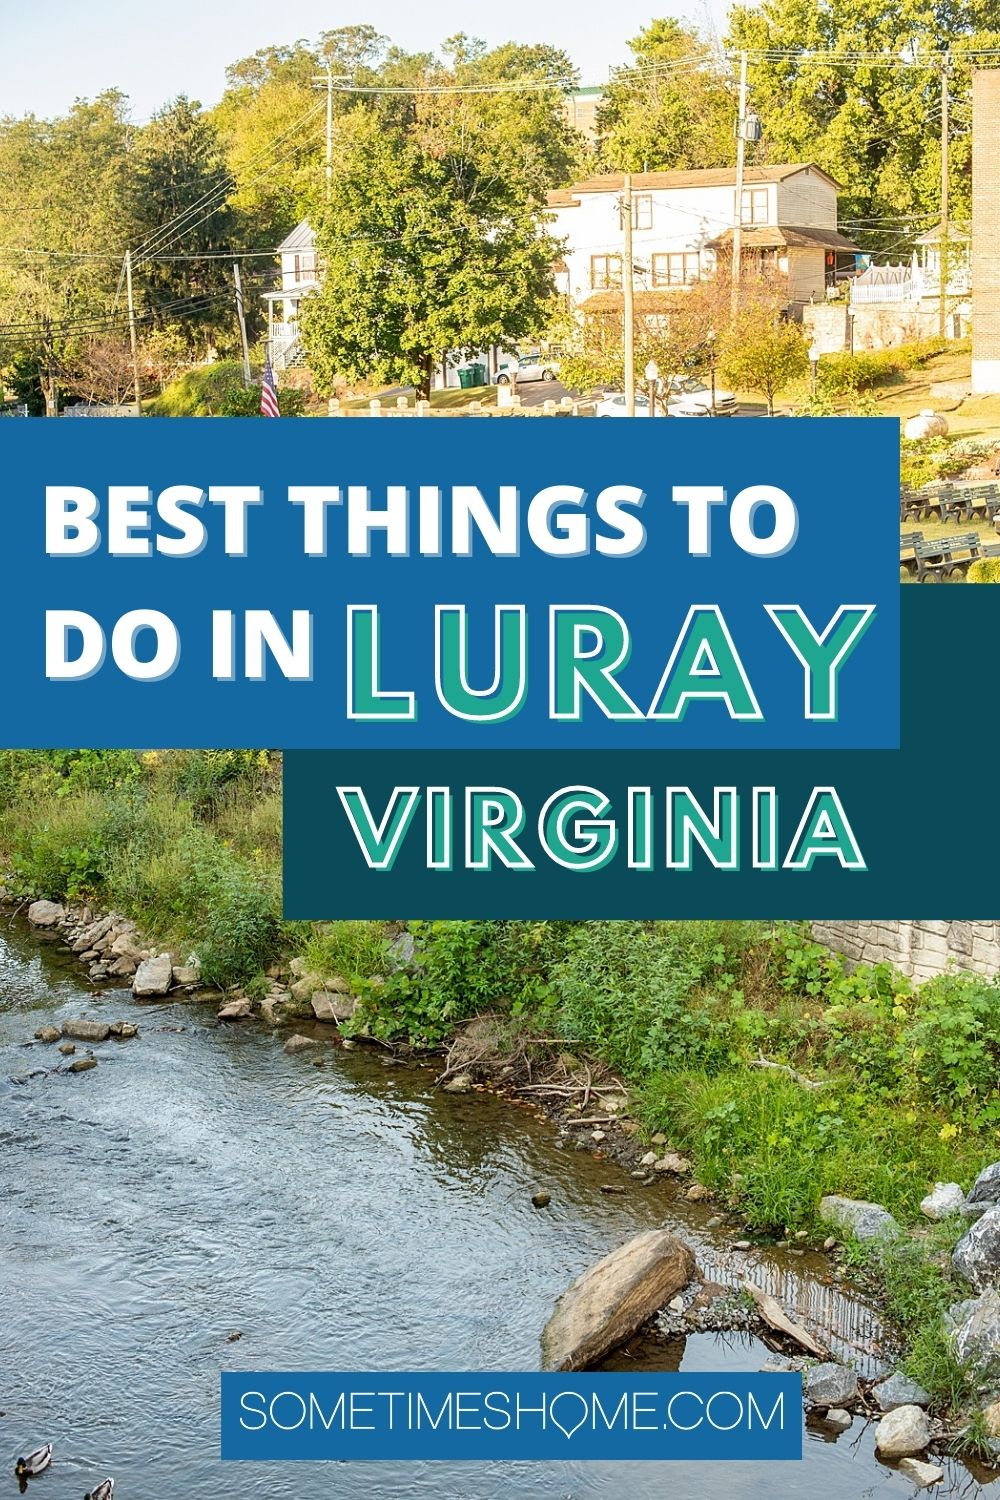 Best things to do in Luray, Virginia with a photo downtown Luray.